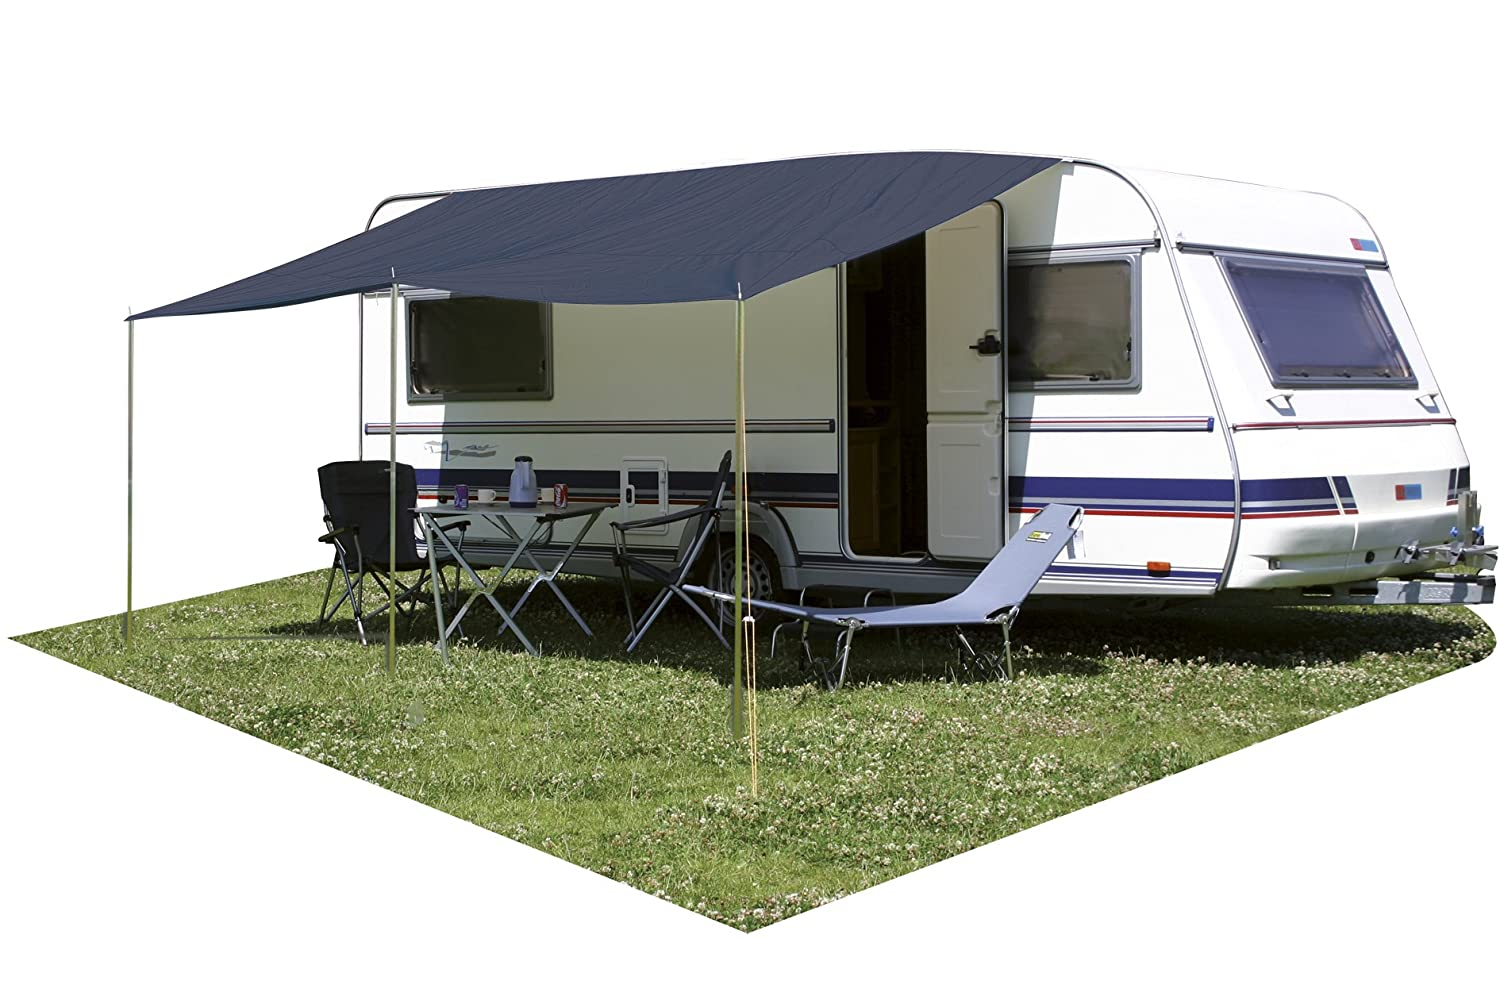 Eurotrail Universal Sunroof Basic Canopy For Caravan 300x240cm Blue Amazoncouk Sports Outdoors